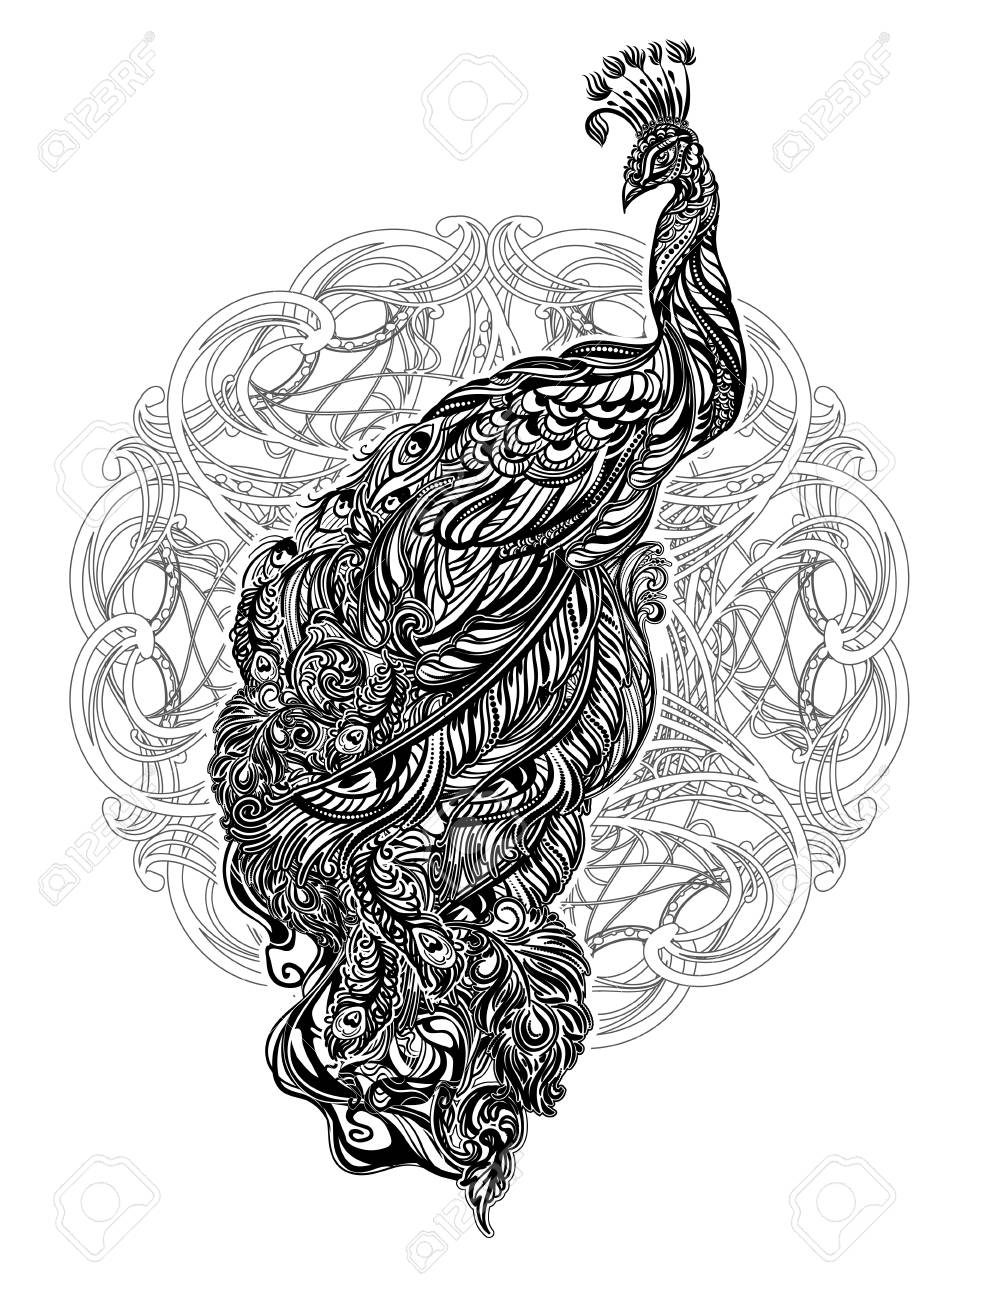 Monochrome black and white peacock tattoo on a mandalve background in art nouveau style stock vector